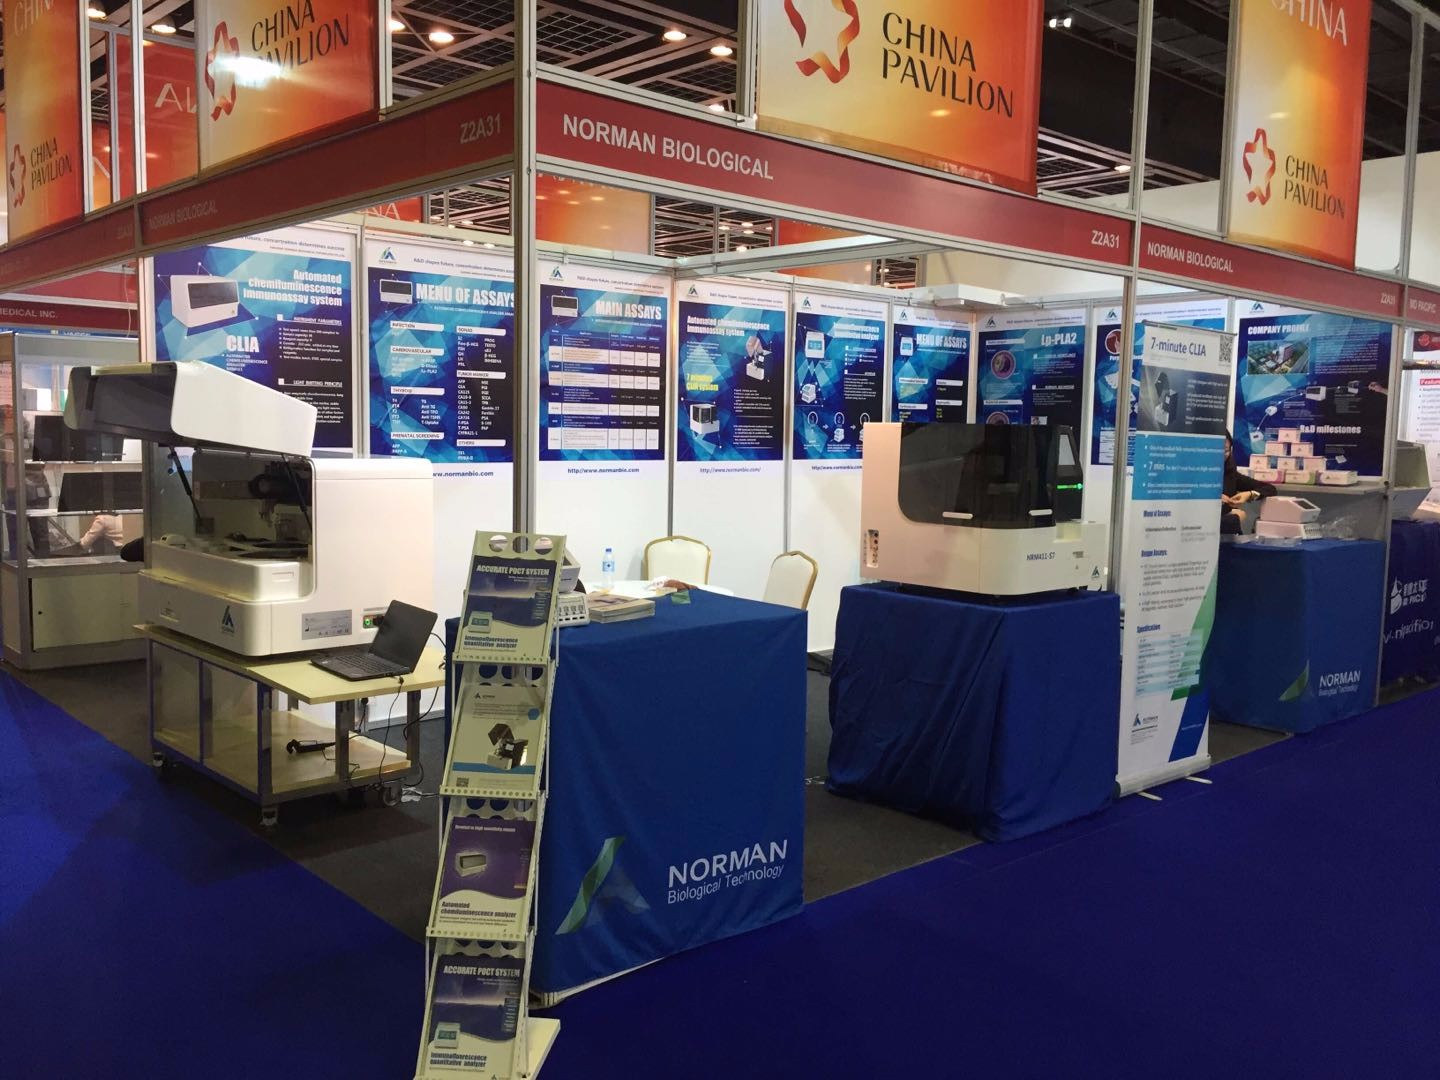 Norman Attended Medlab 2018 In Dubai